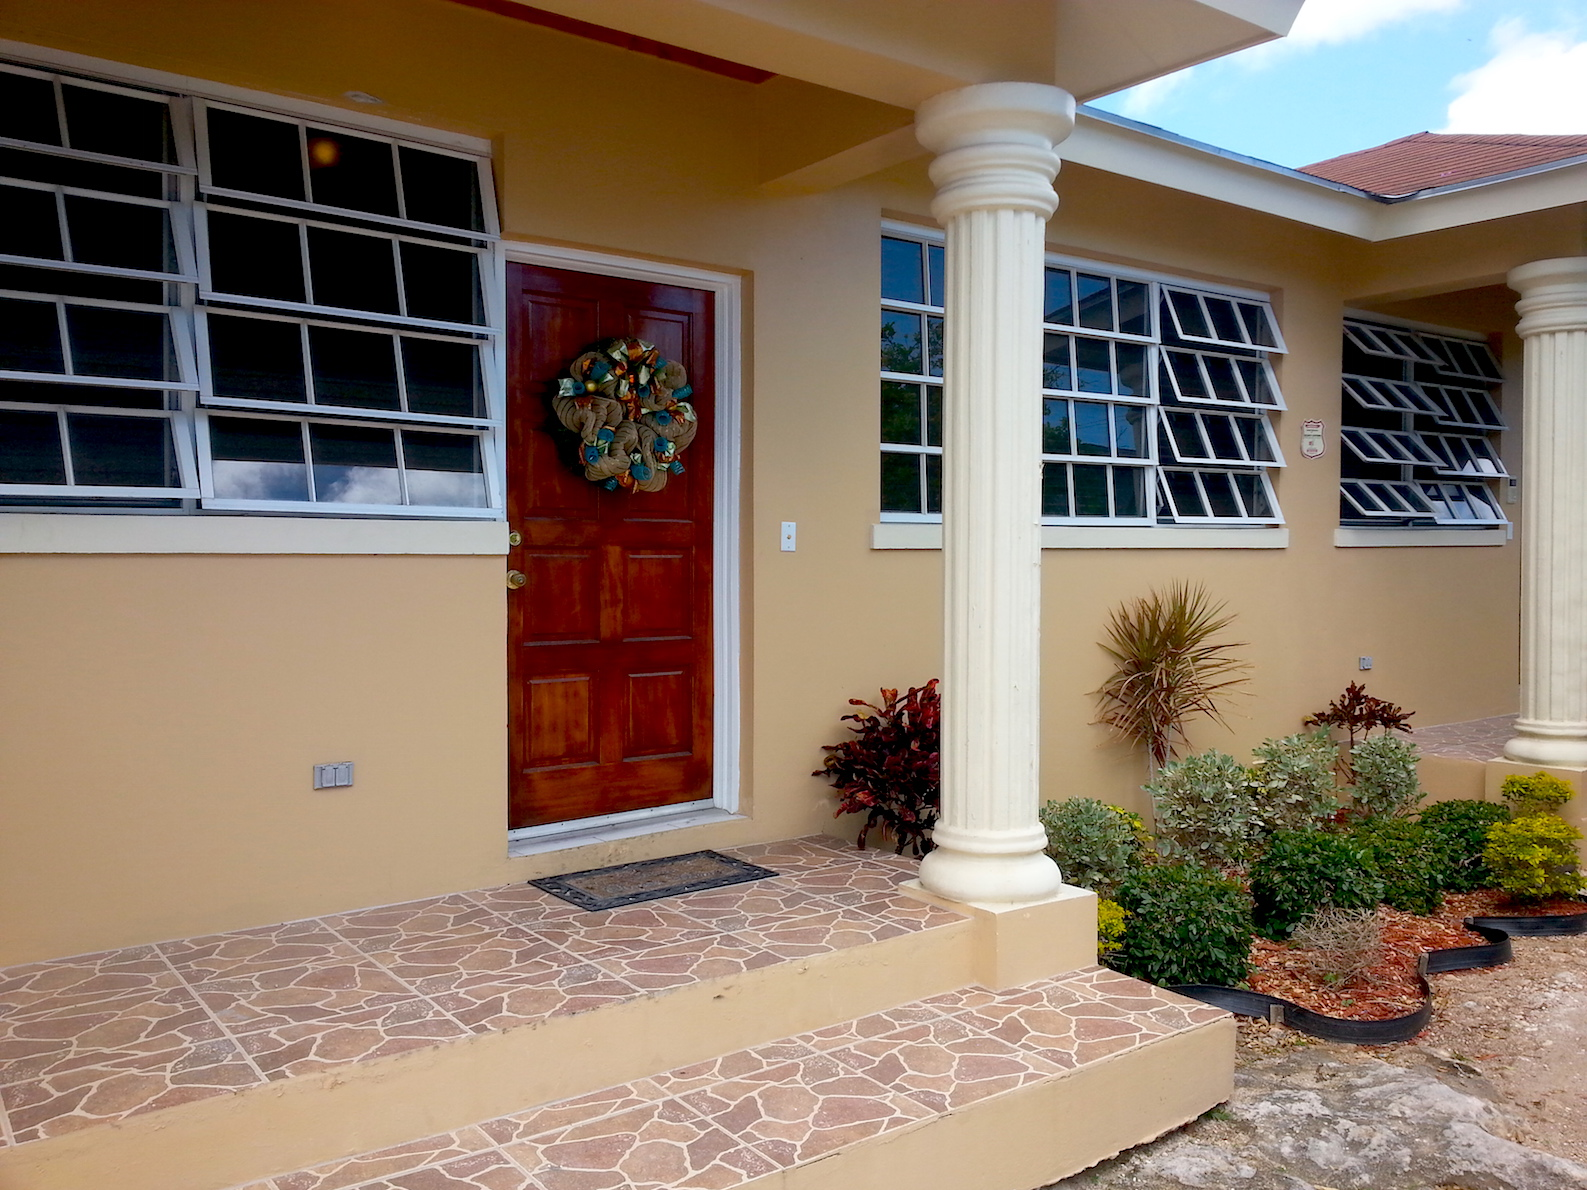 Multi Family for Sale at Duplex in Quaint Area of Gamble Heights - Blue Hill Road South Nassau And Paradise Island, Bahamas